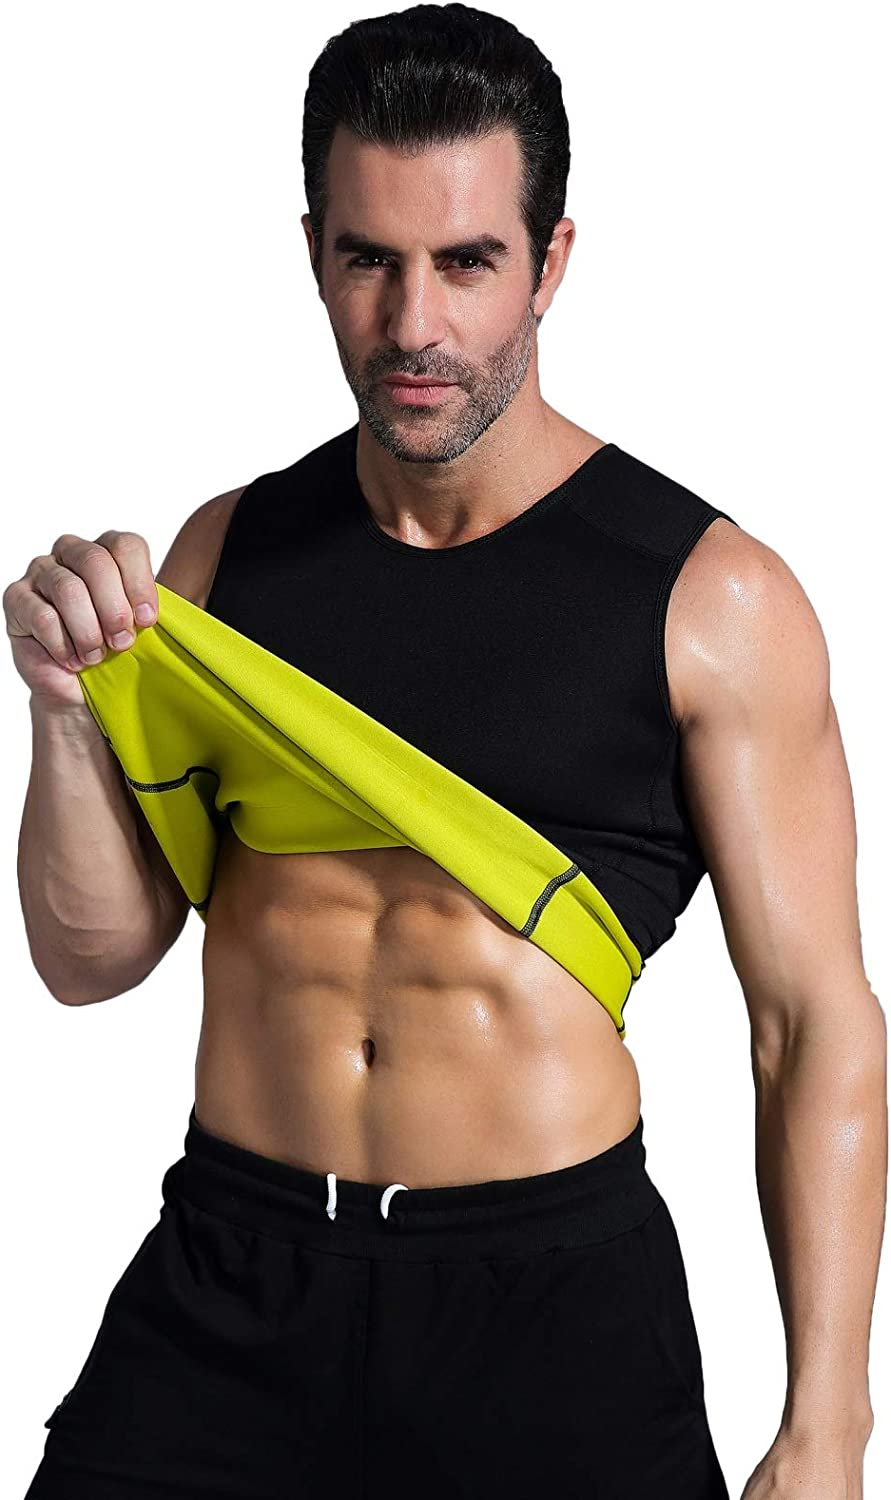 Ausom Mens Slimming Shaper Vest- Hot Thermo Shapewear- Exercise & Workout Sauna Suit- Abdominal Trainer- Upper Body Fat Burner for Weight Loss